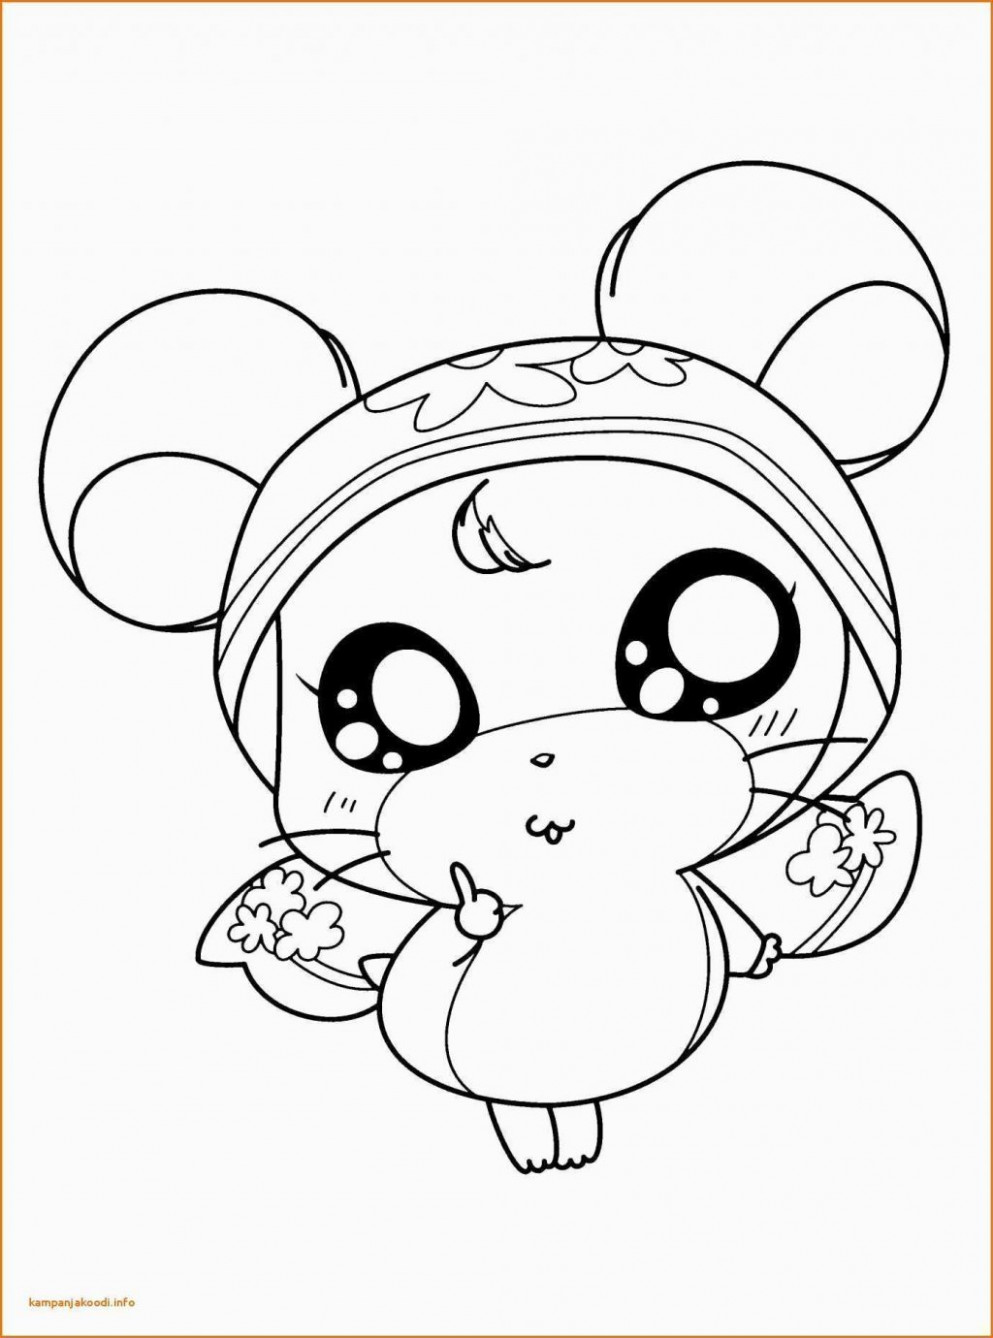 coloring page ~ Christmas Coloring Sheetsble Page Super Hero Pages ..